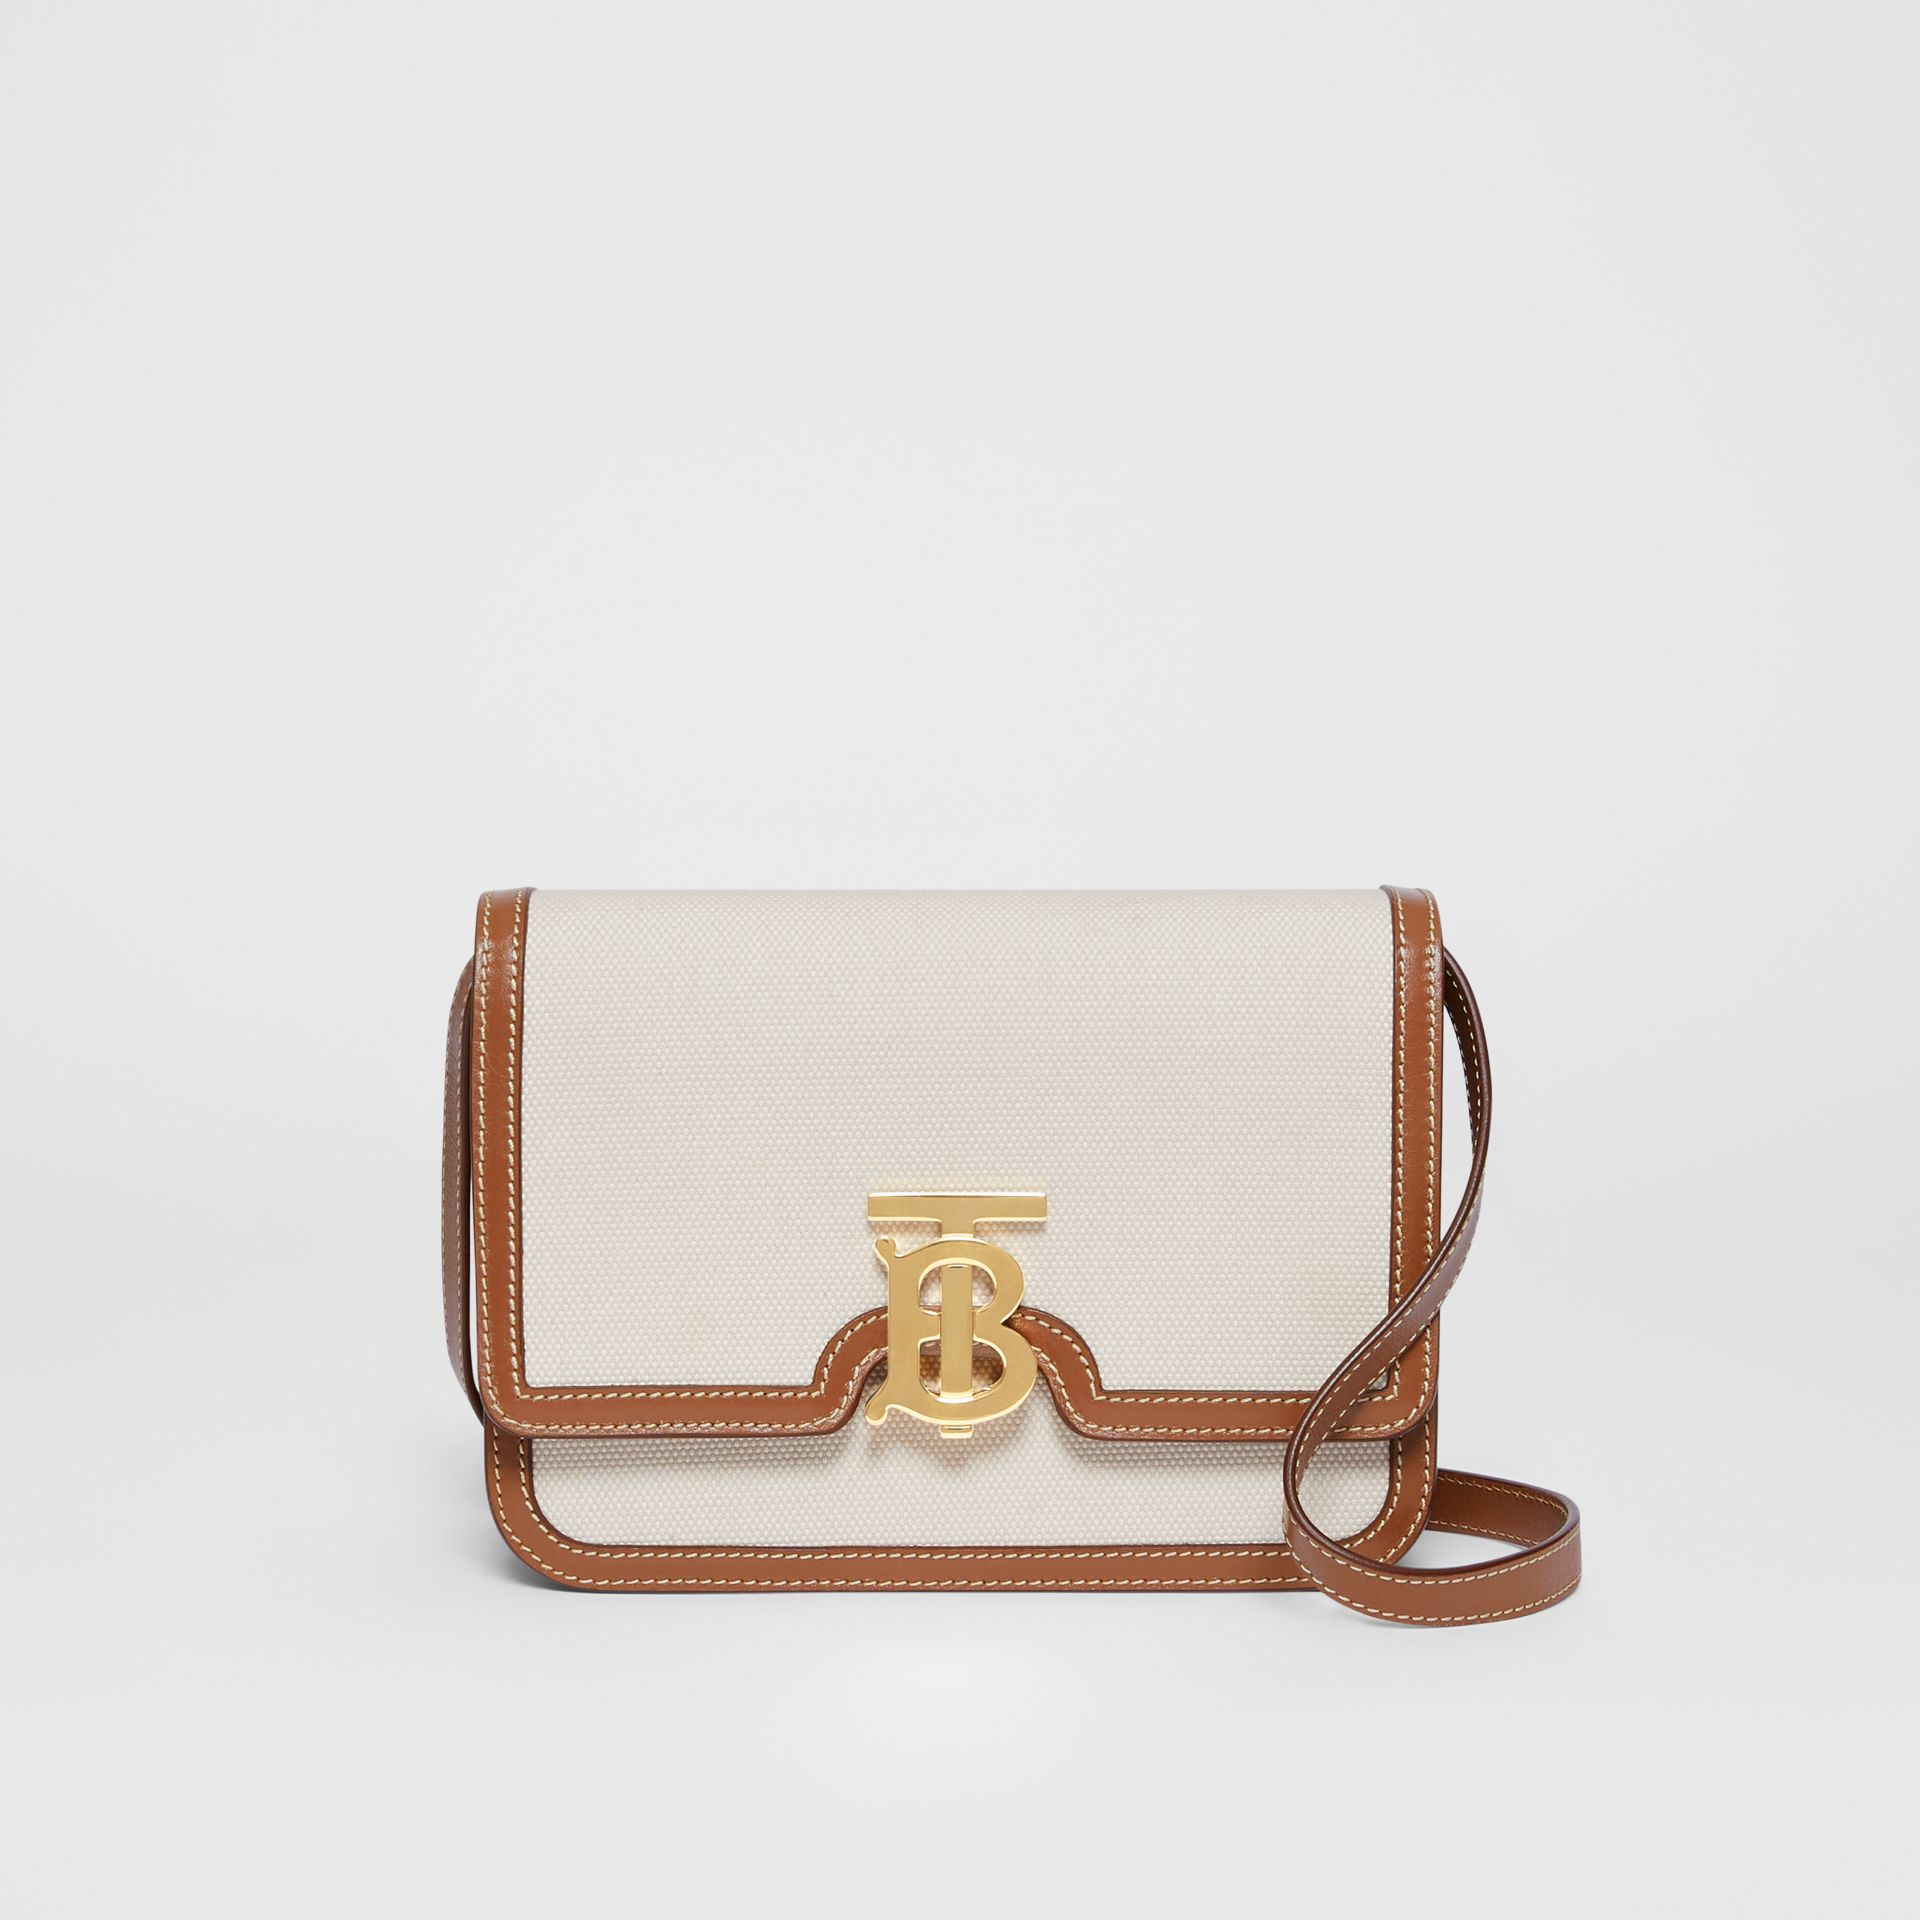 Small Two-tone Canvas and Leather TB Bag in Malt Brown - Women | Burberry Australia - gallery image 0